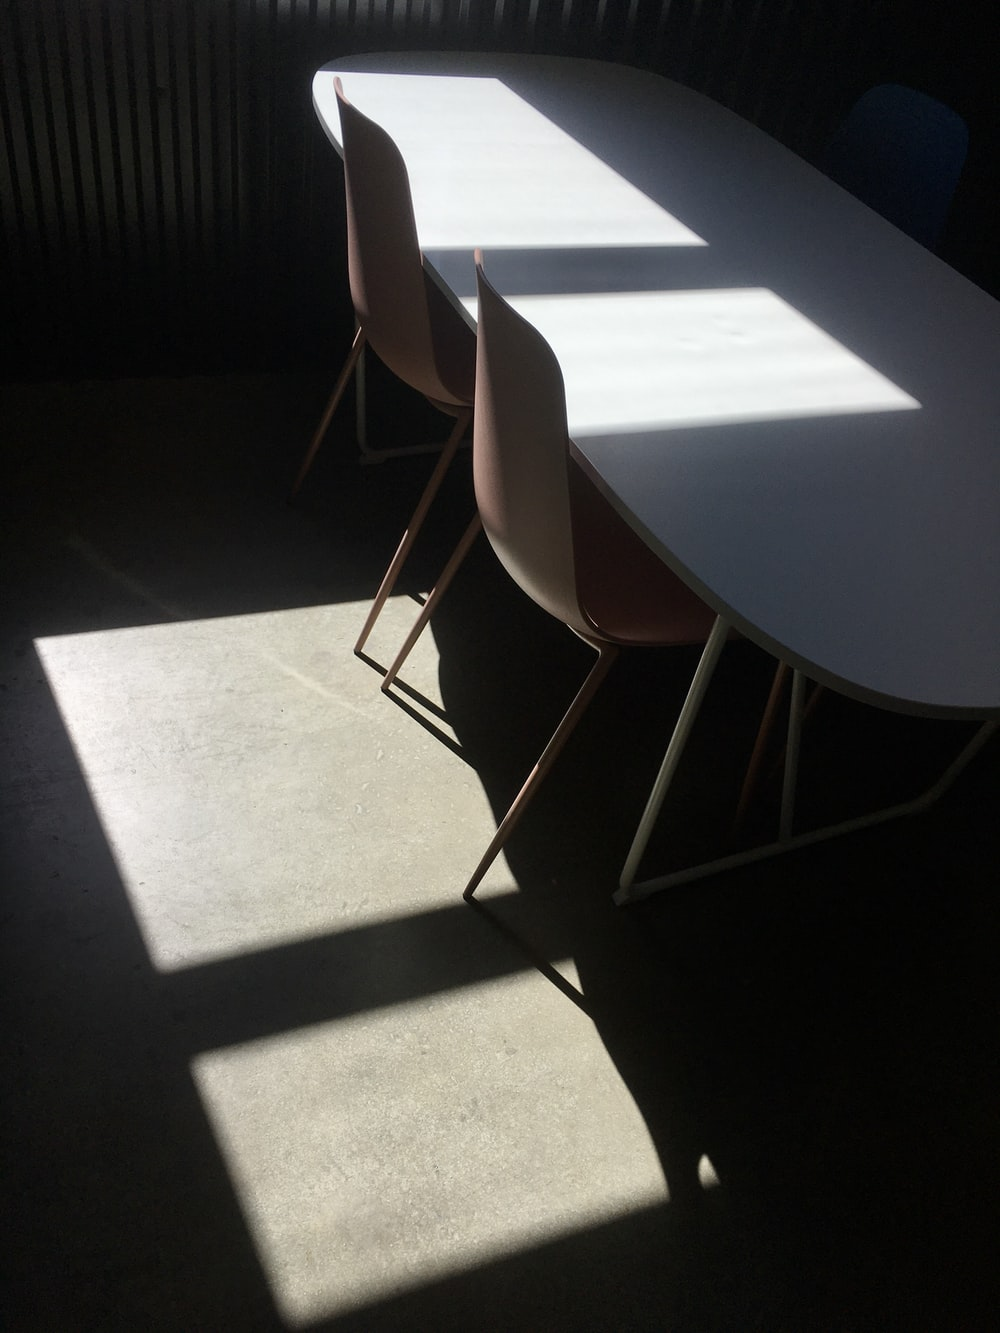 brown and gray chair beside white table